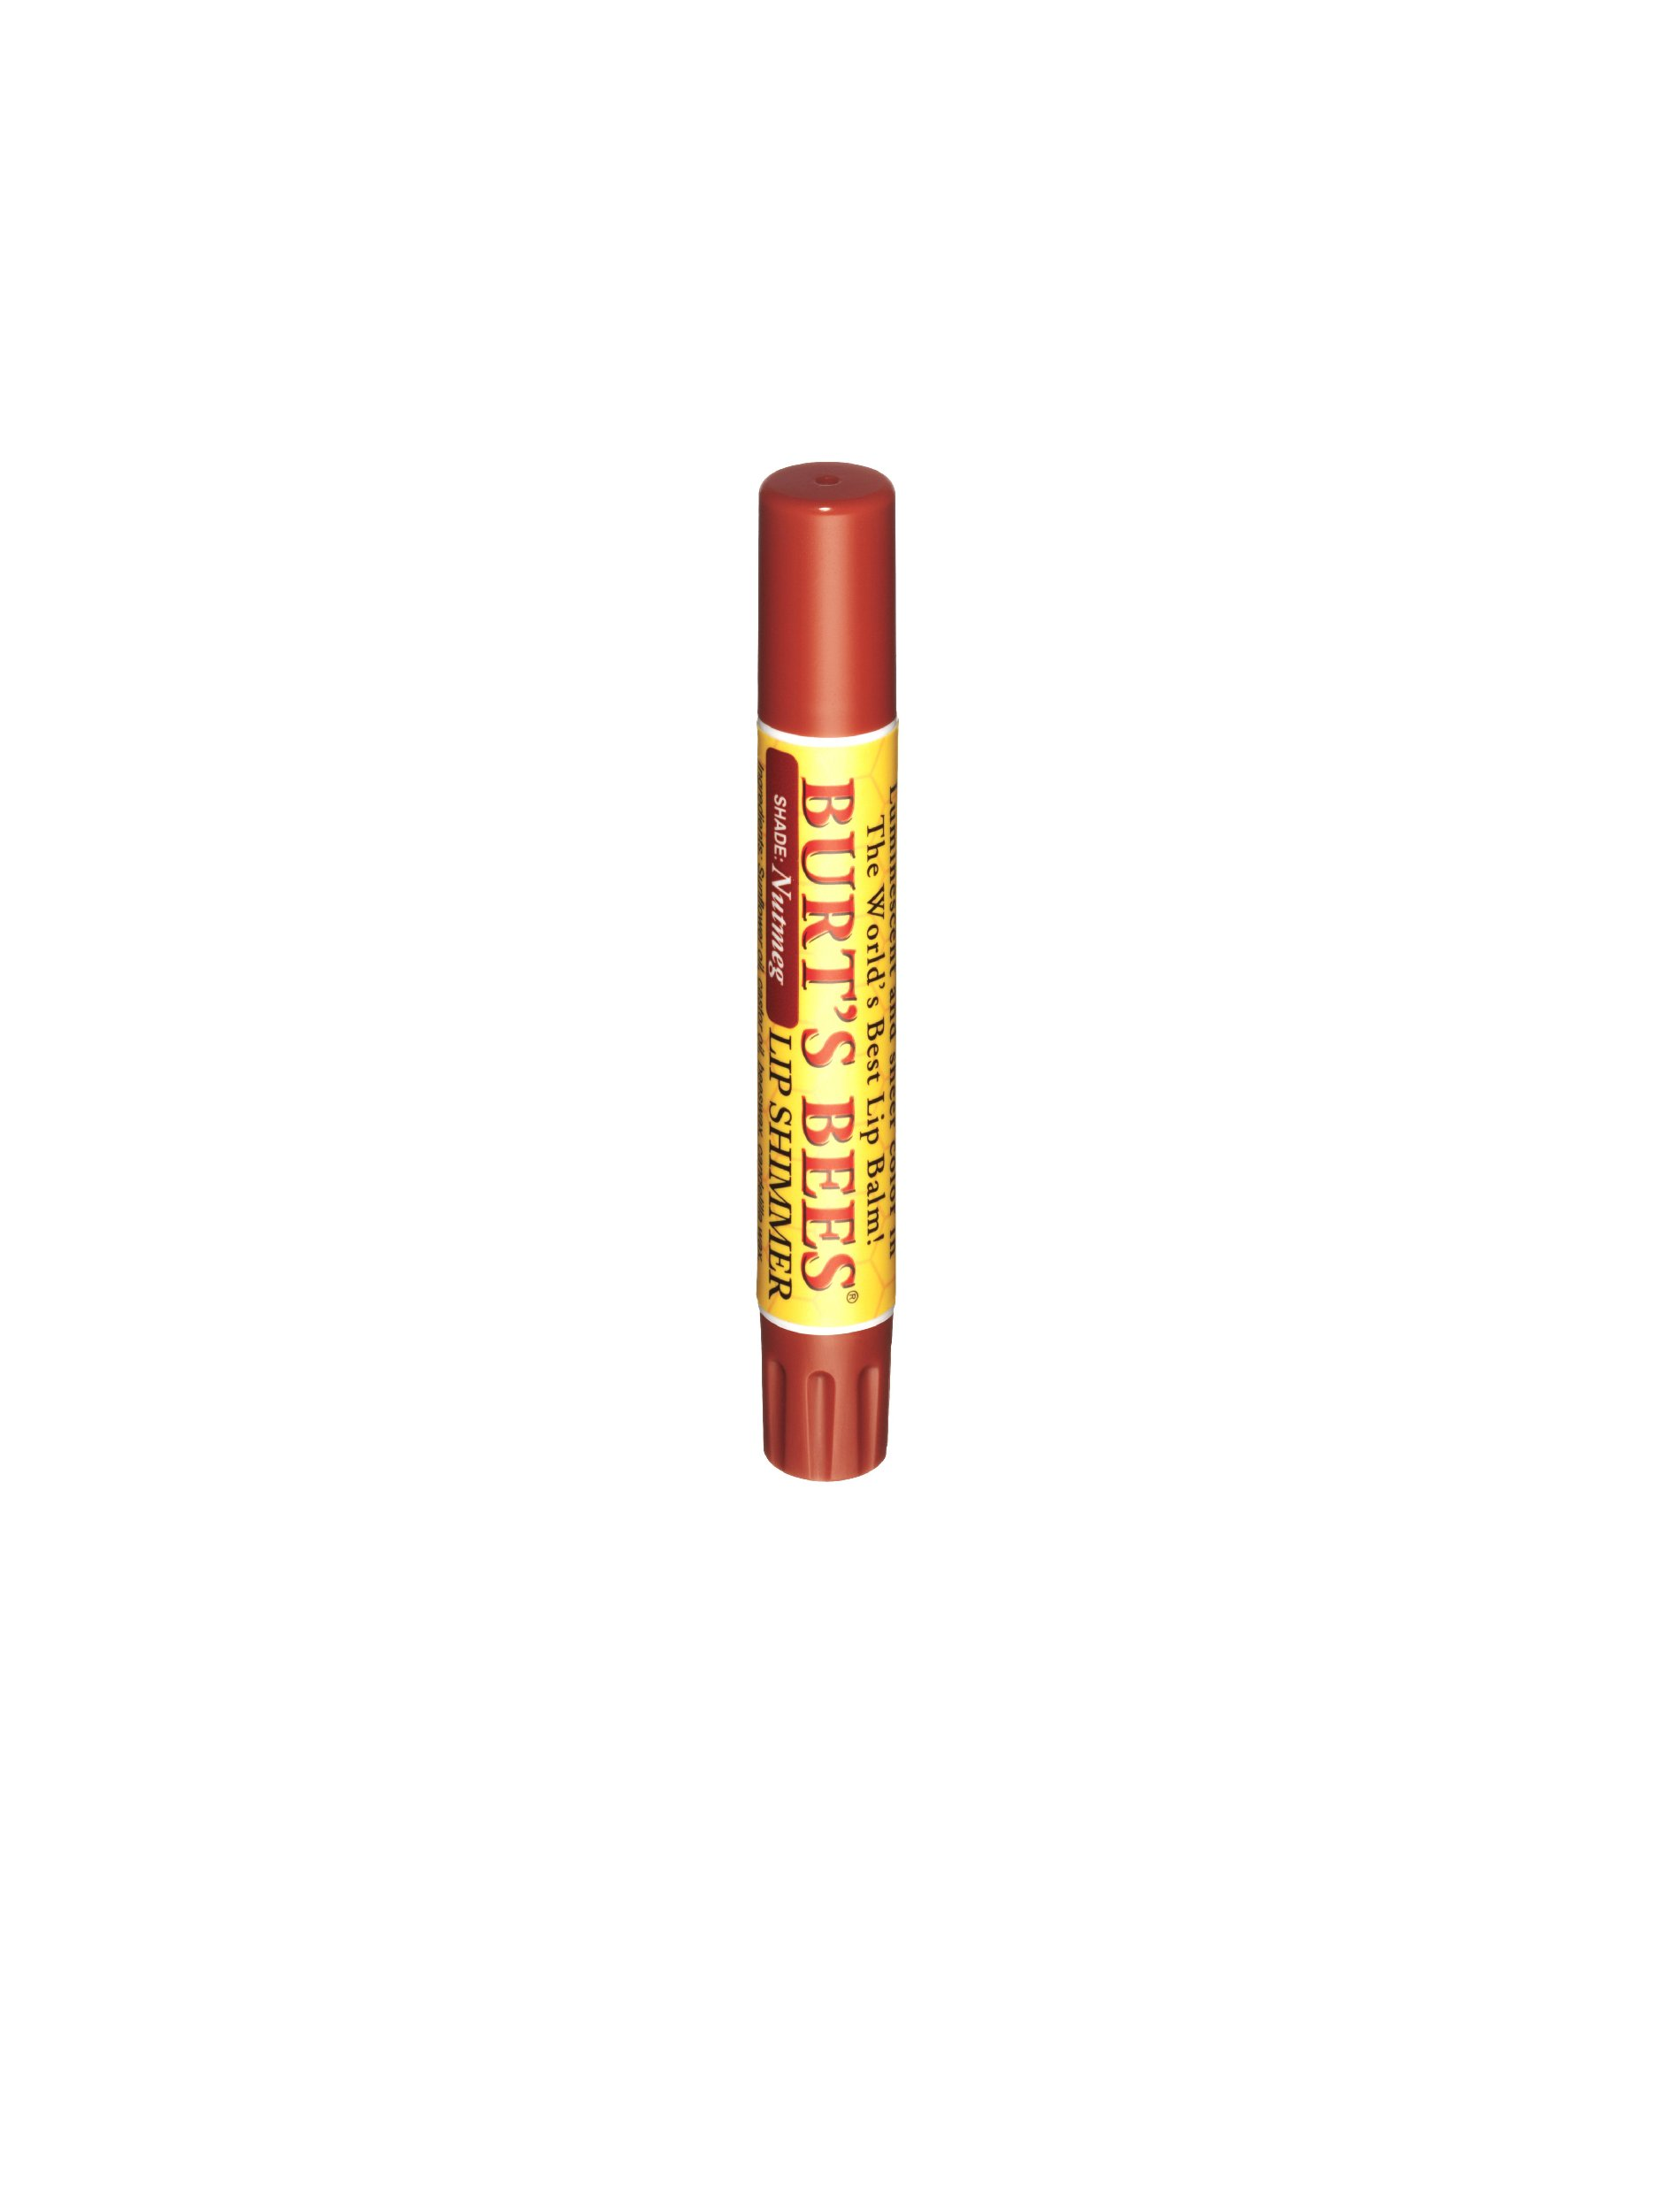 Burt's Bees Lip Shimmer, Nutmeg, .09-Ounce Tubes (Pack of 4)